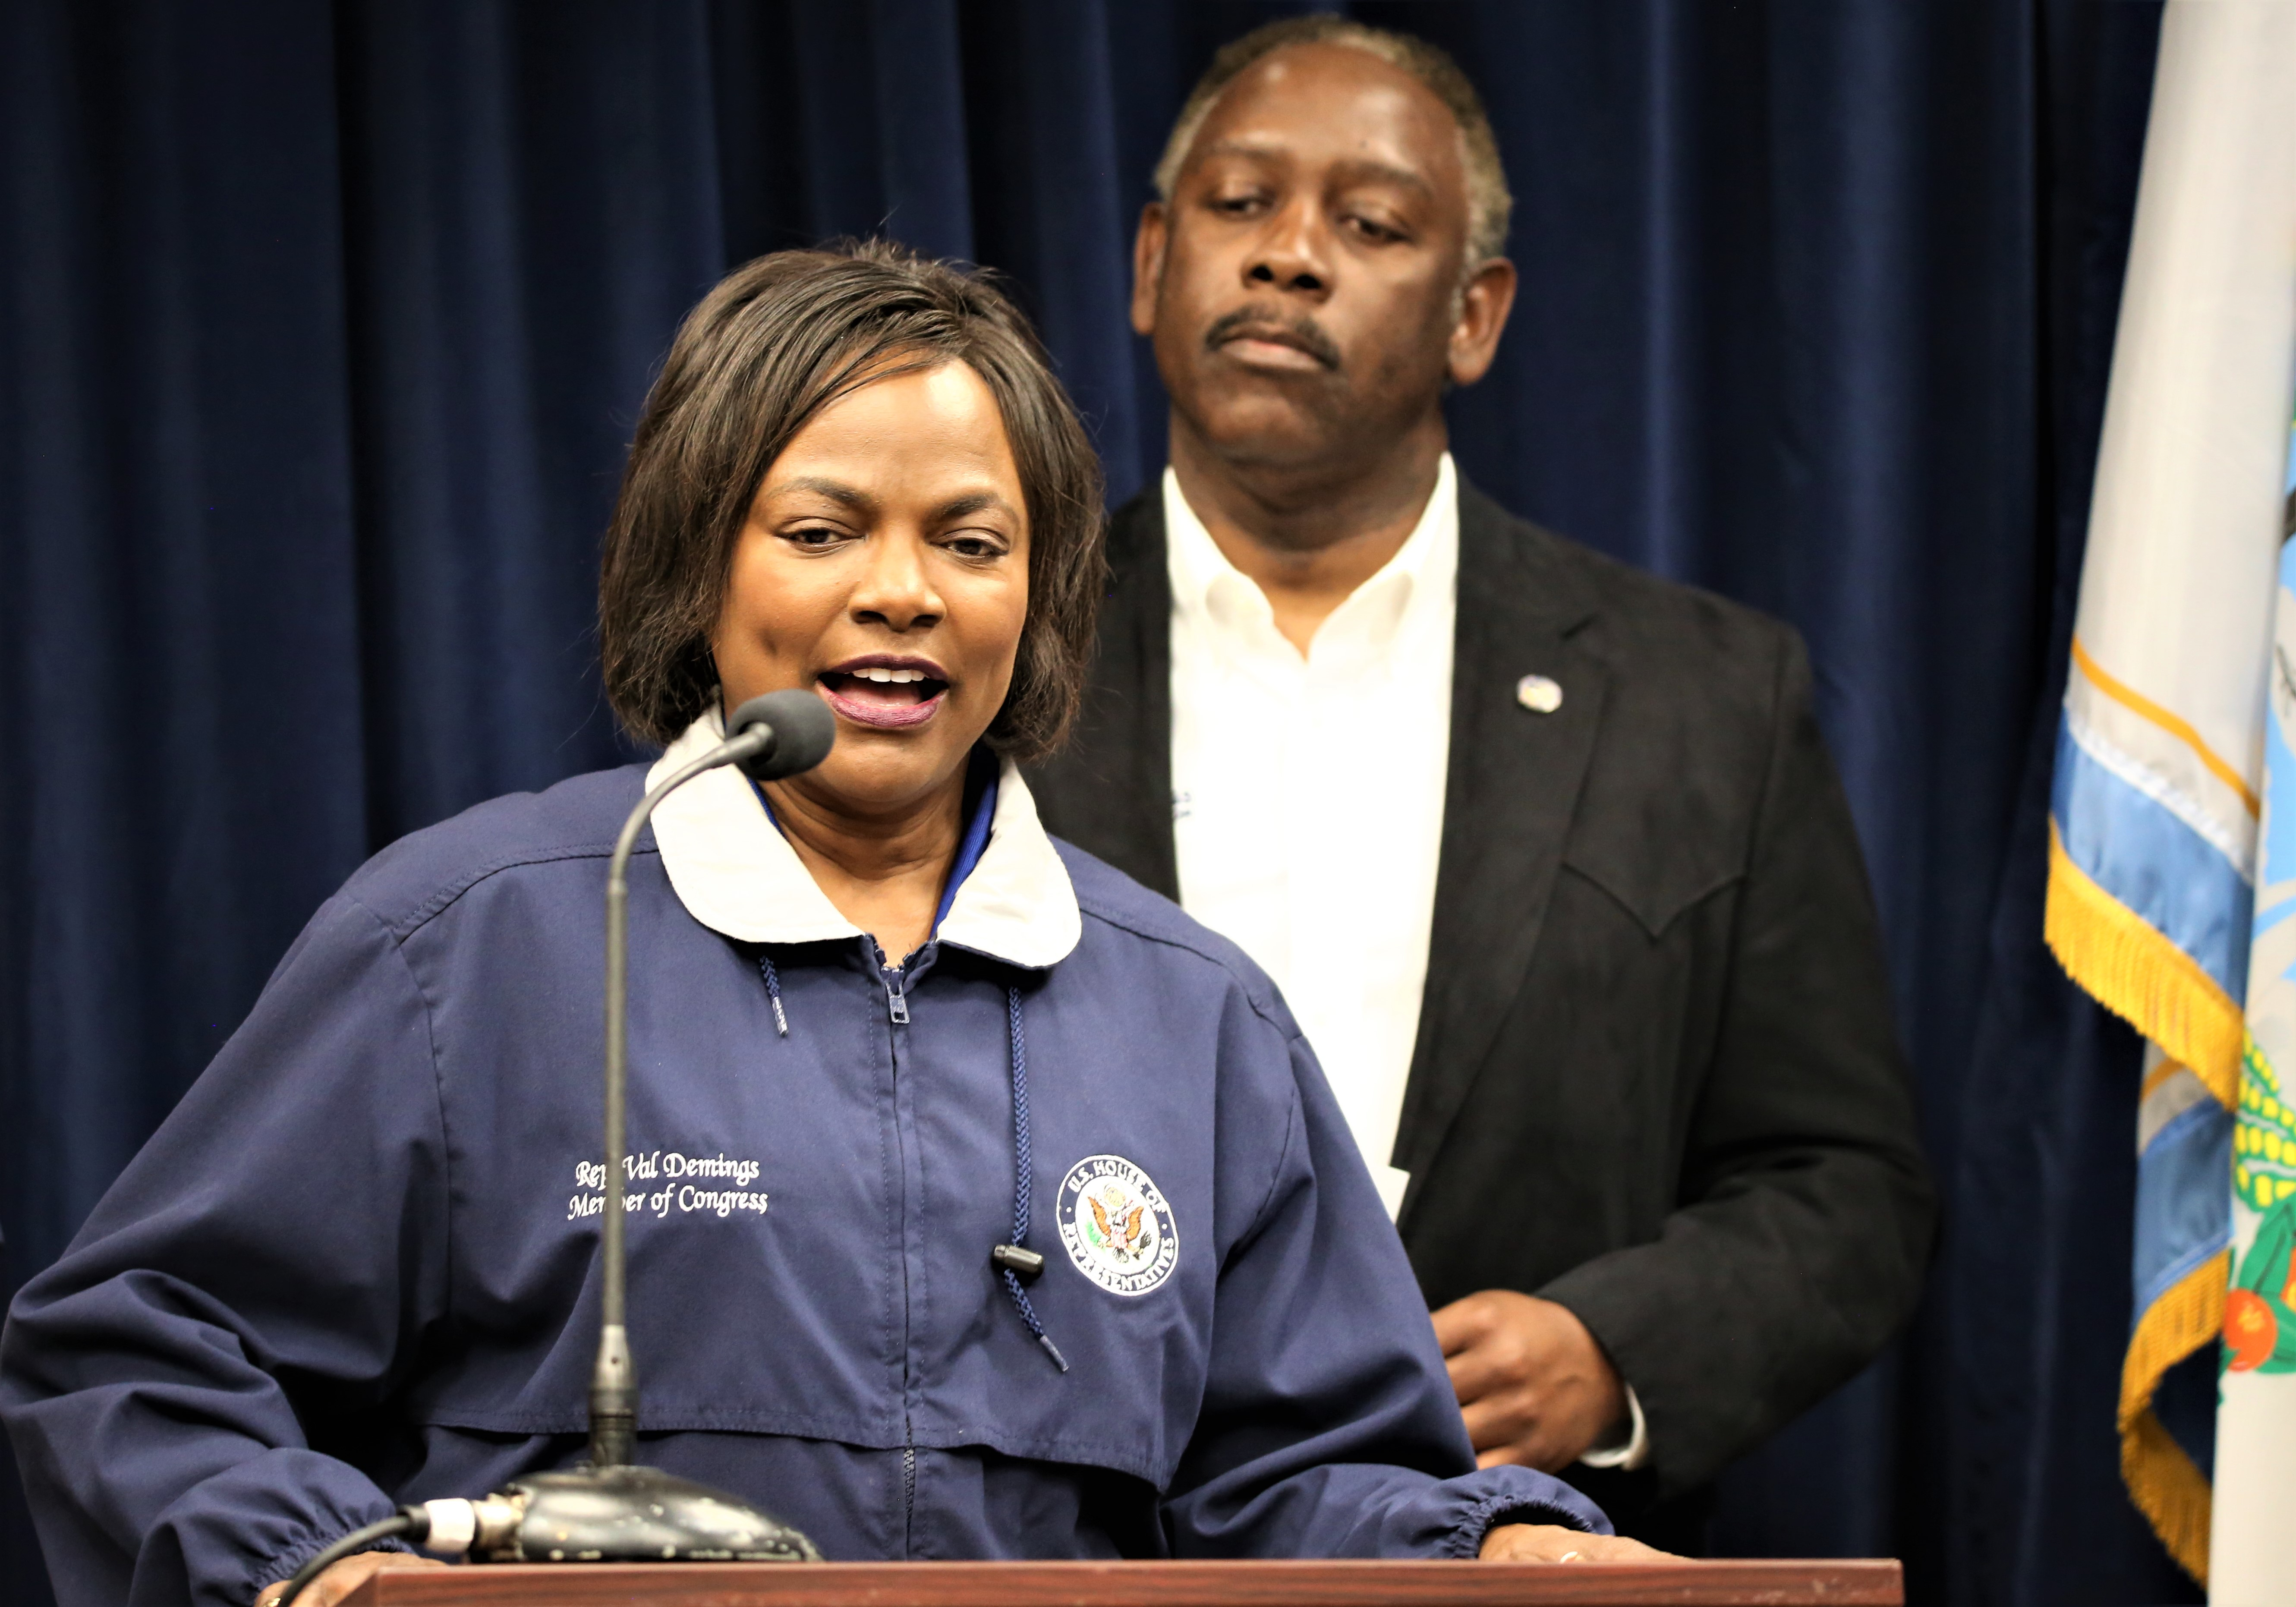 U.S. Representative Val Demings (D-10, Florida) spoke during Orange County Mayor Jerry Demings's COVID-19 press conference at Orange County Emergency Operations Center, providing an update about the House passing the Family First Coronavirus Act Saturday, March 14, 2020. Photo: Willie David/Florida National News.